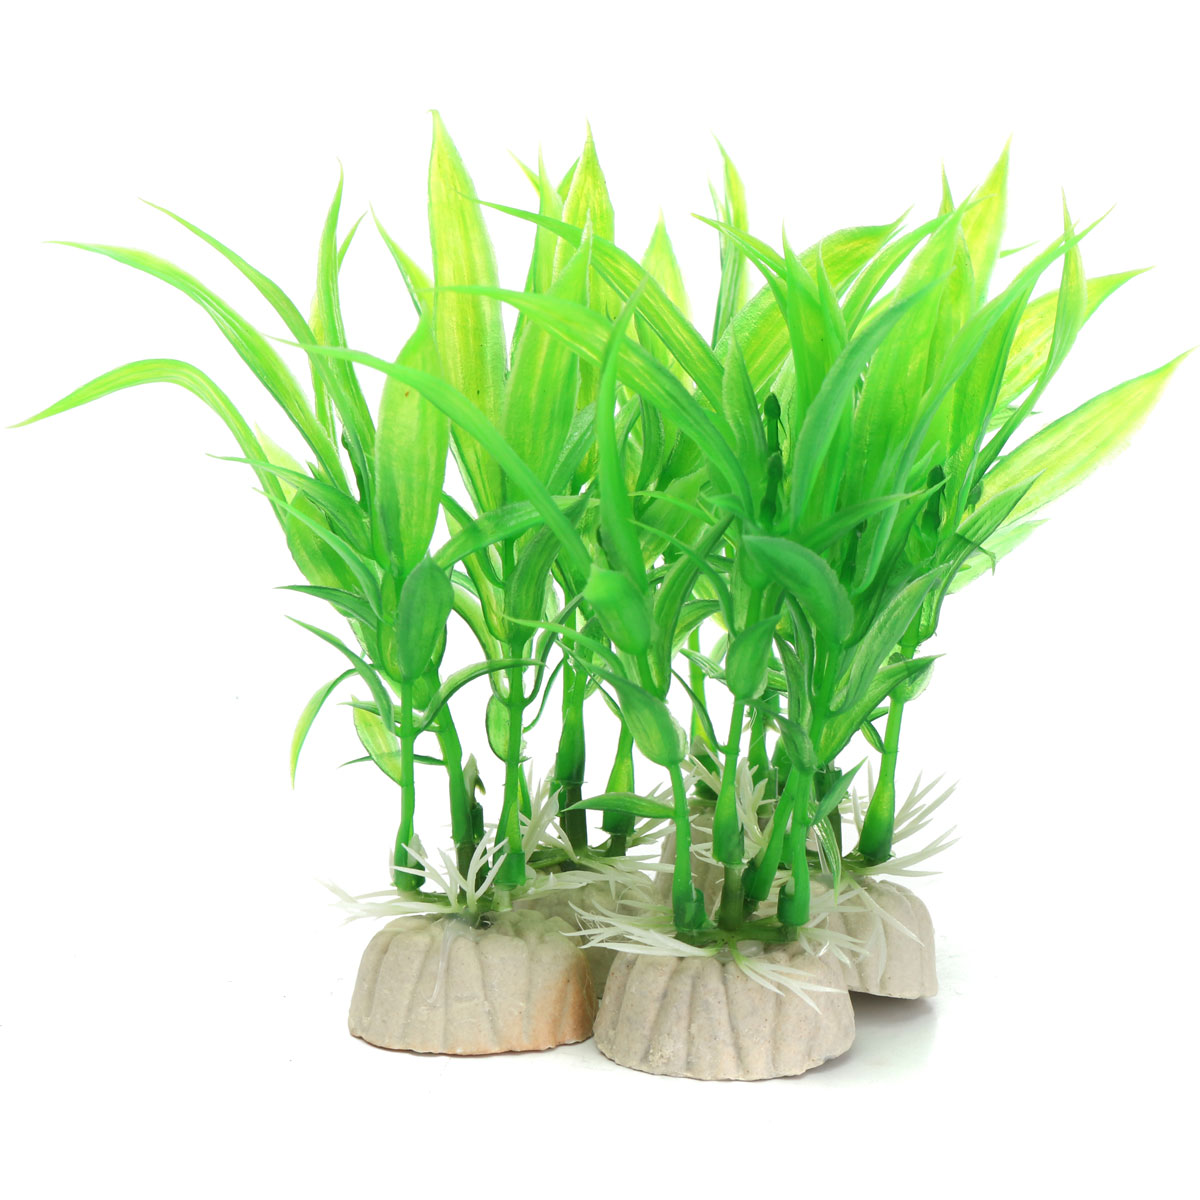 Water Weeds Plastic Simulation Grass Aquatic Plant Fish Tank Aquarium Decoration Ornament